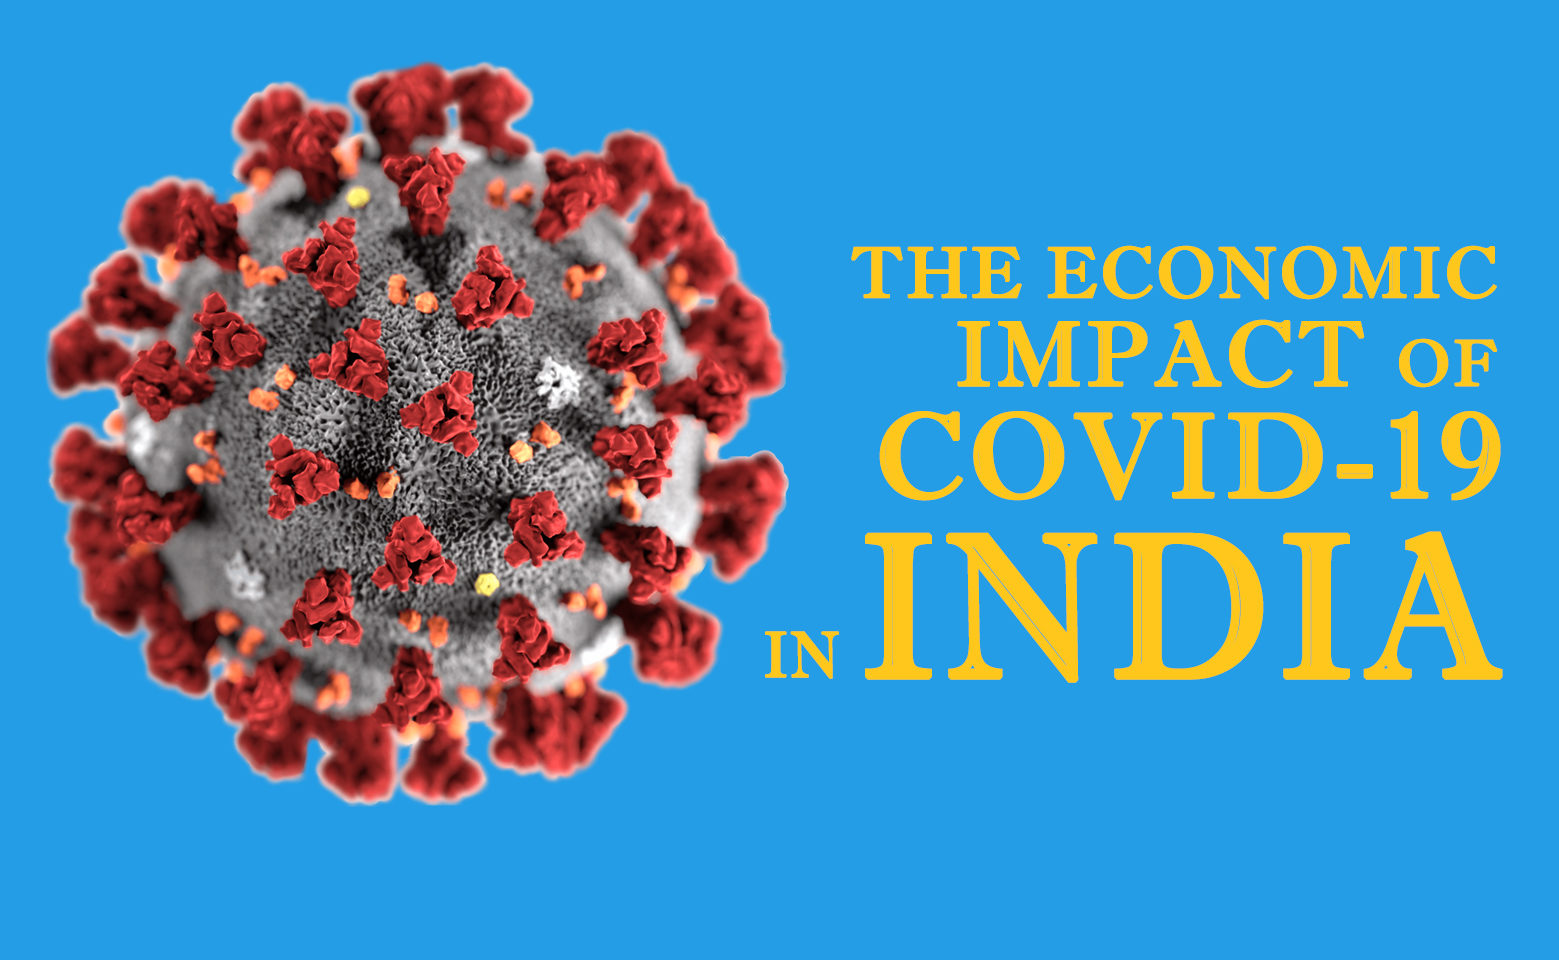 Economic Impact of COVID-19 in India